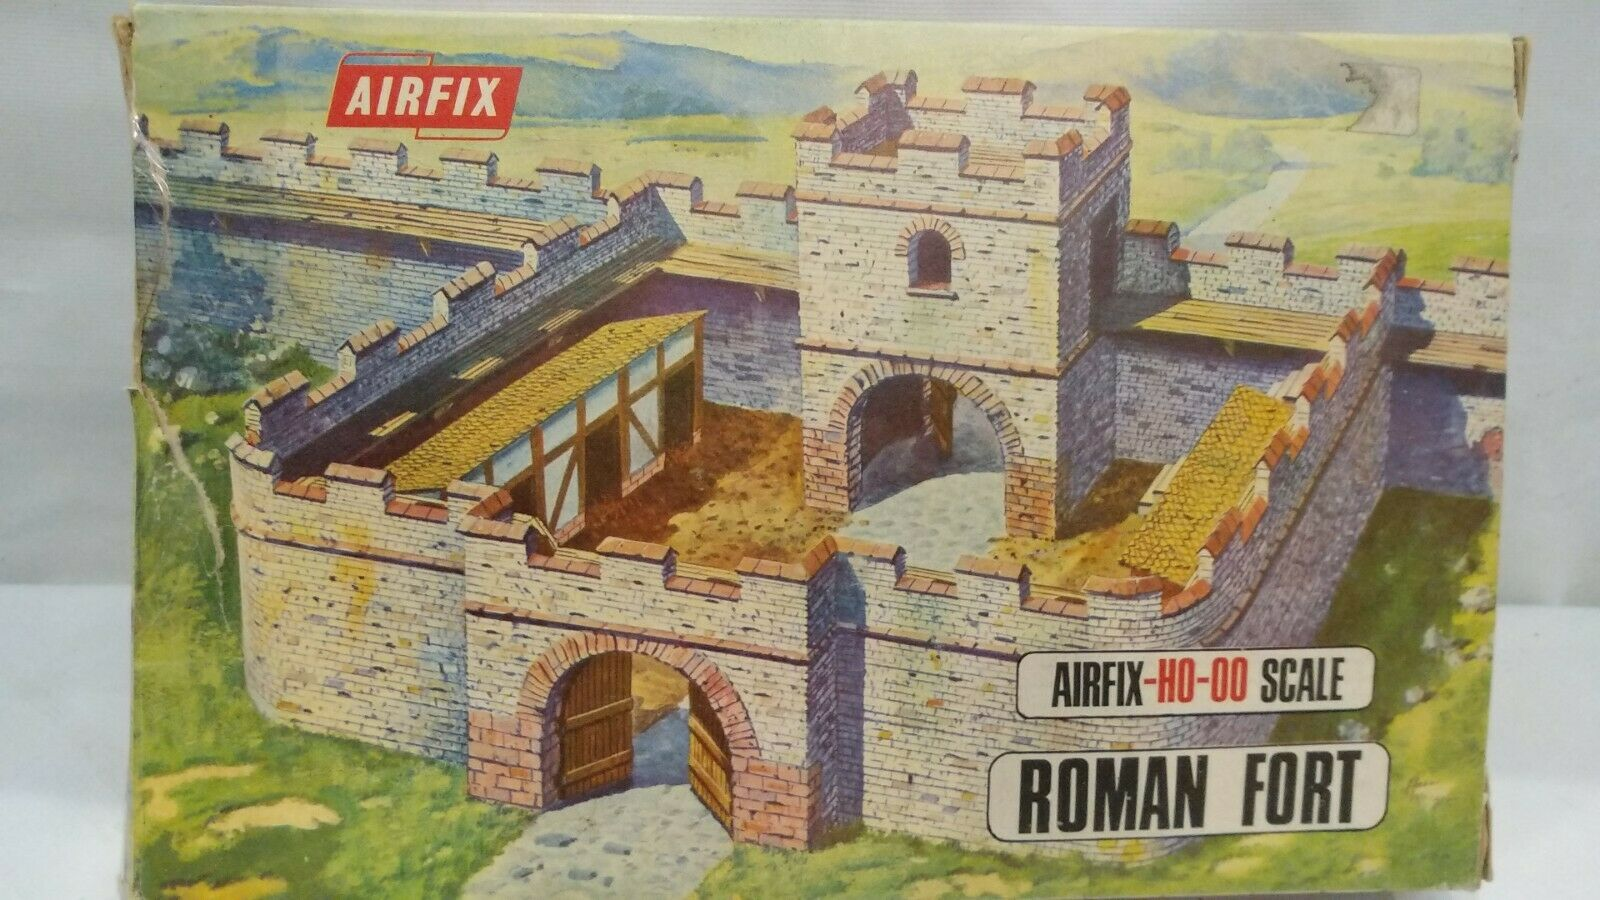 Vintage AIRFIX Roman Fort HO 00 Scale 1706 Model Kit Diorama School Project